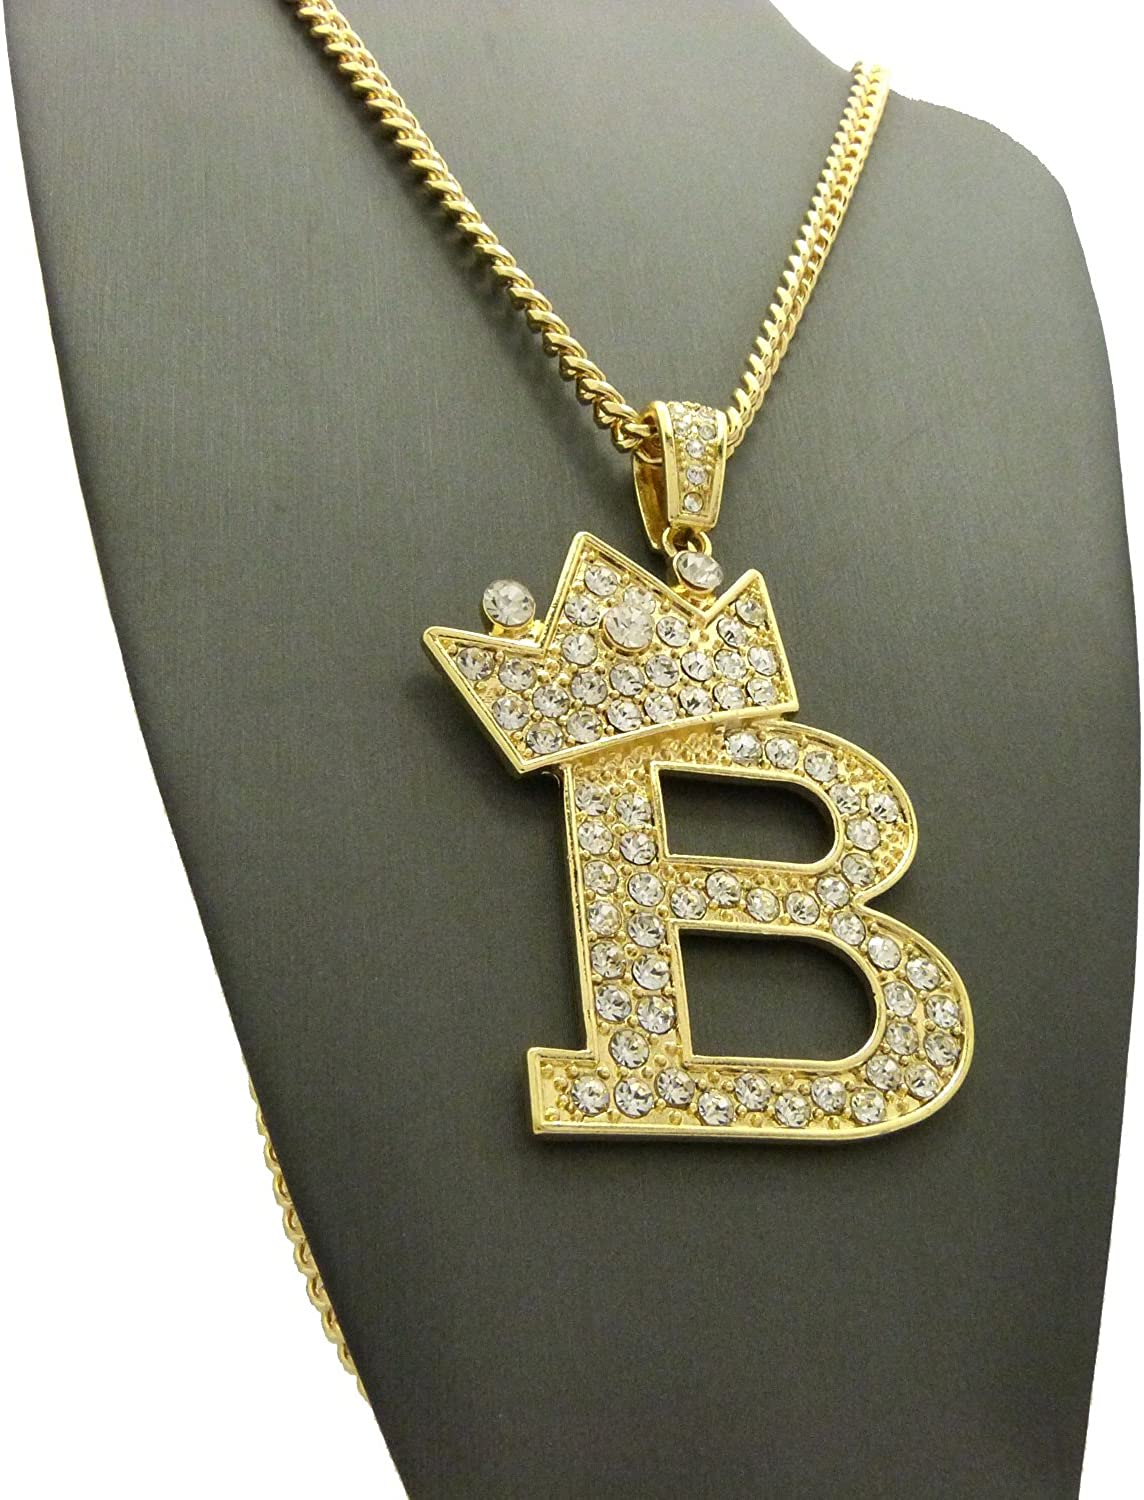 Silver Color Fashion 21 Iced Out King Crown B Pendant 5mm 24 Cuban Chain Necklace in Gold